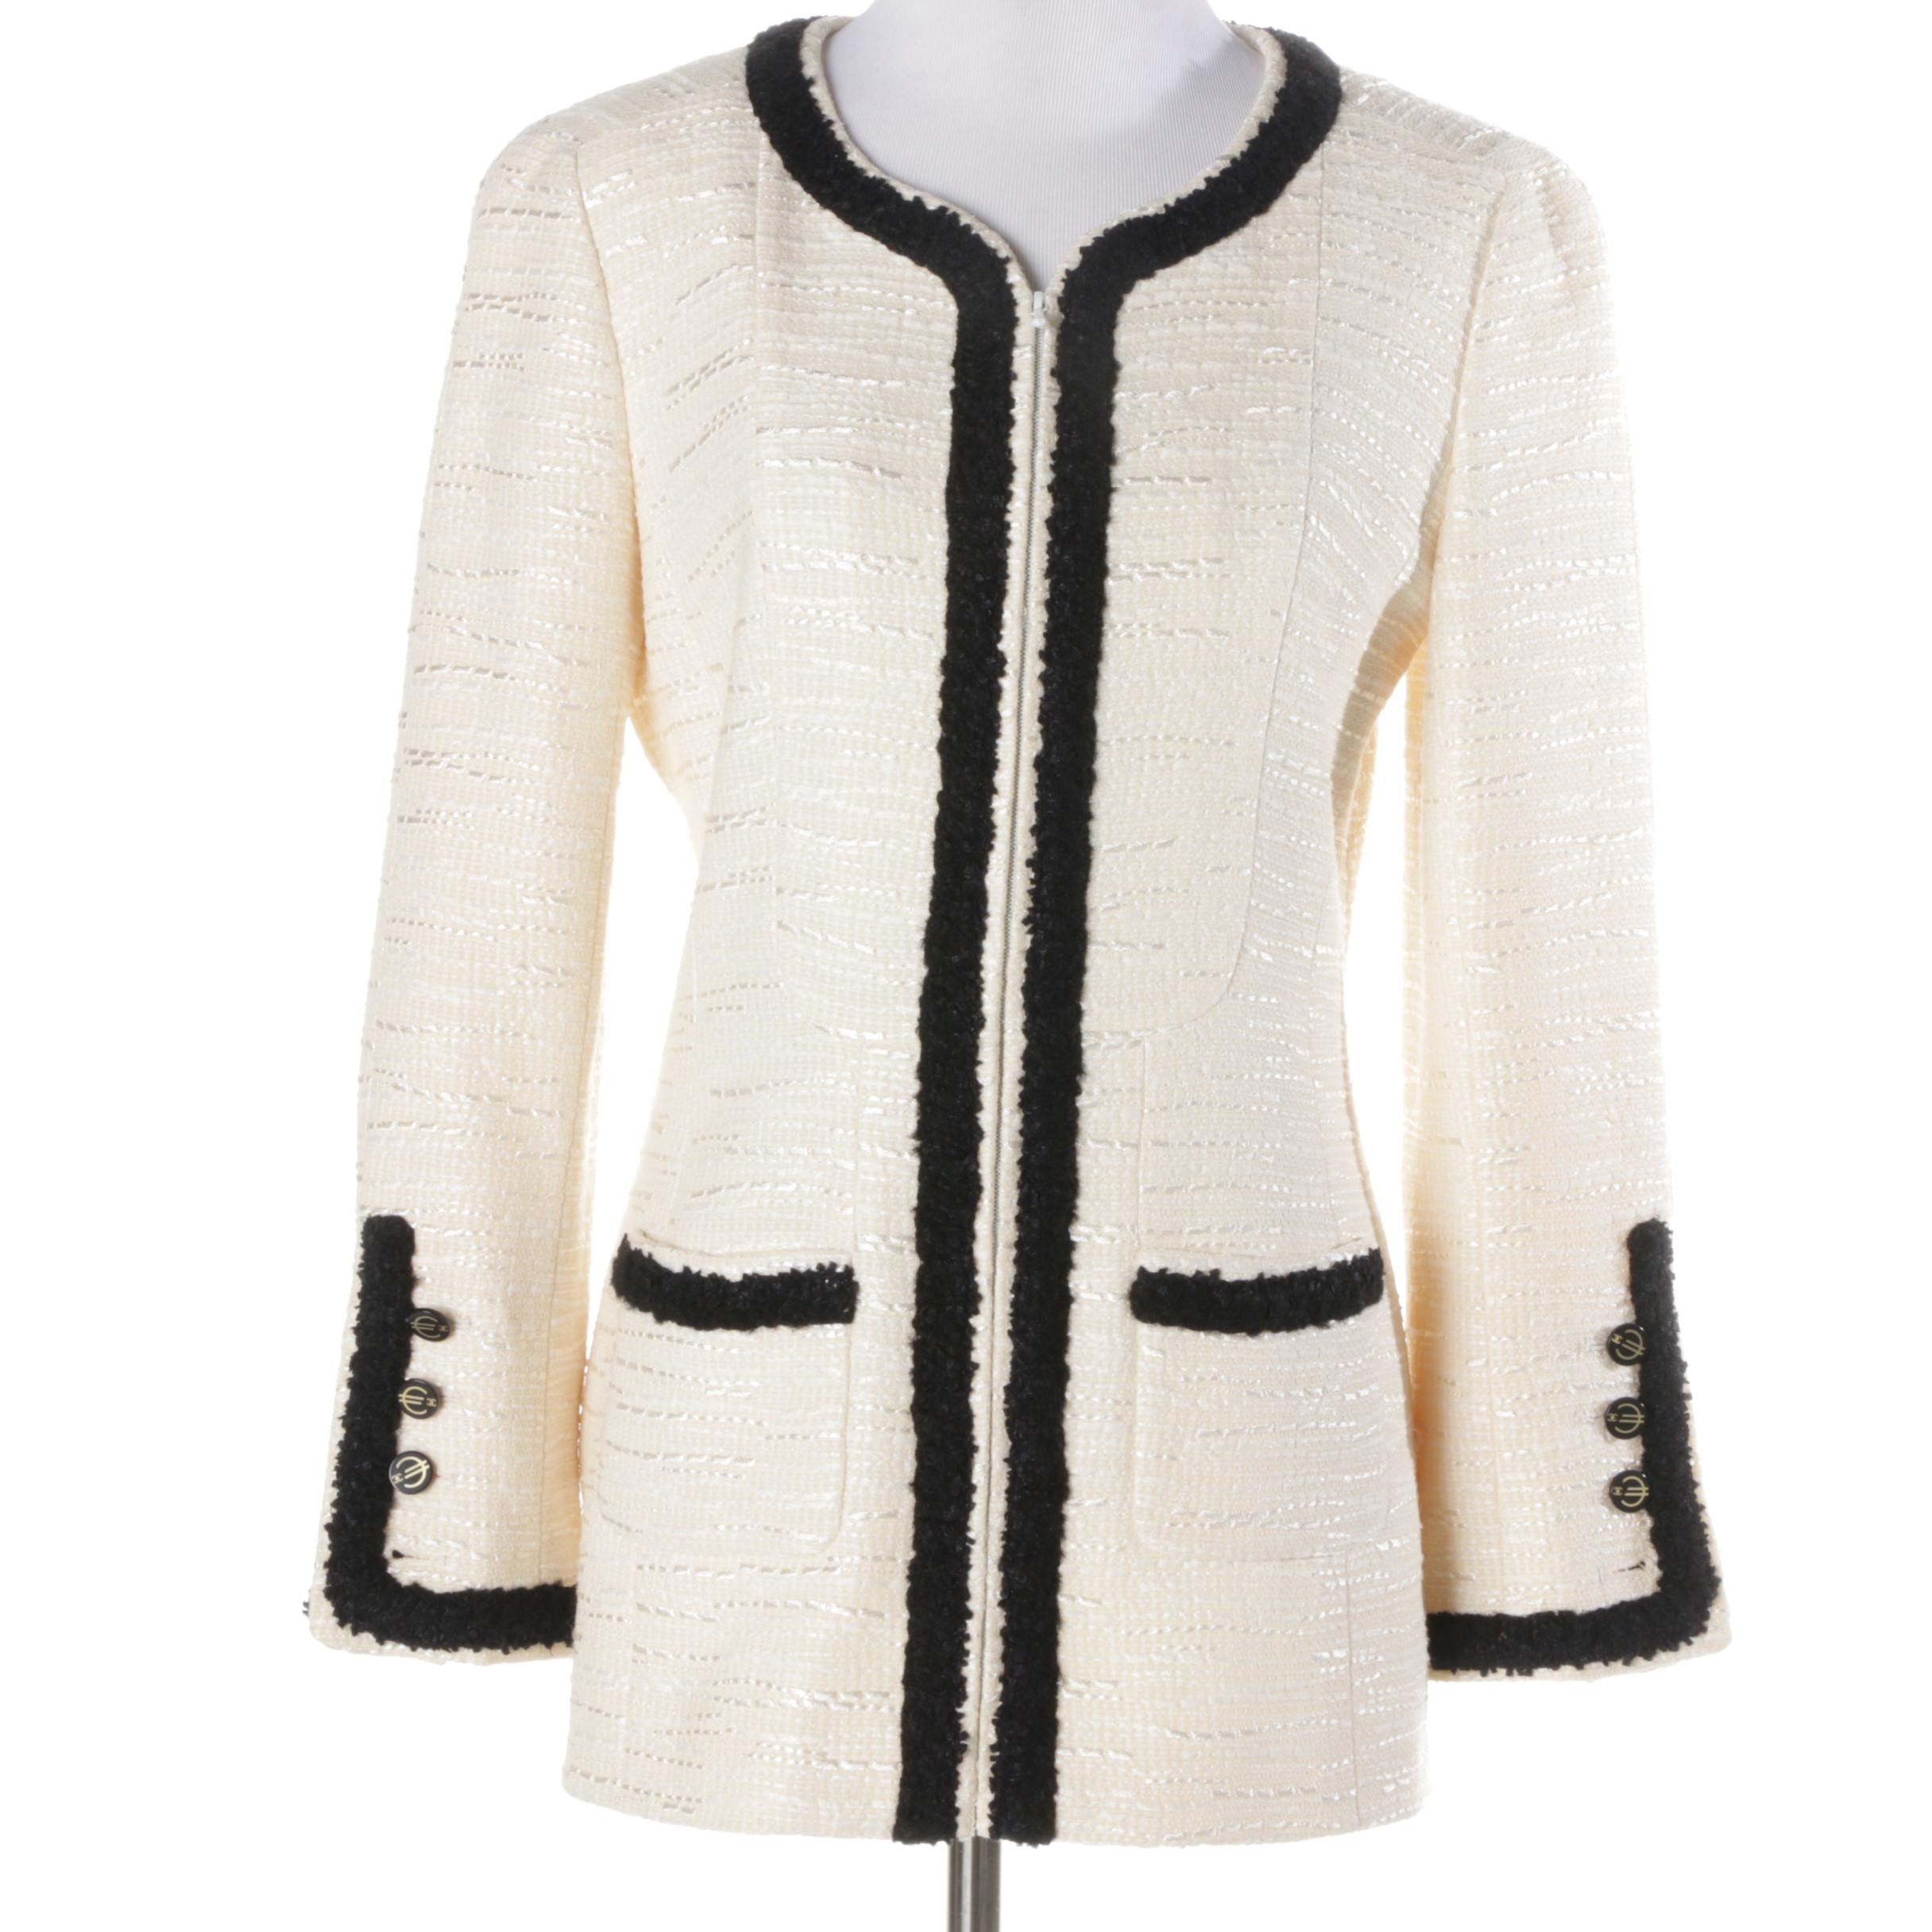 Women's Chanel Wool Blend Jacket